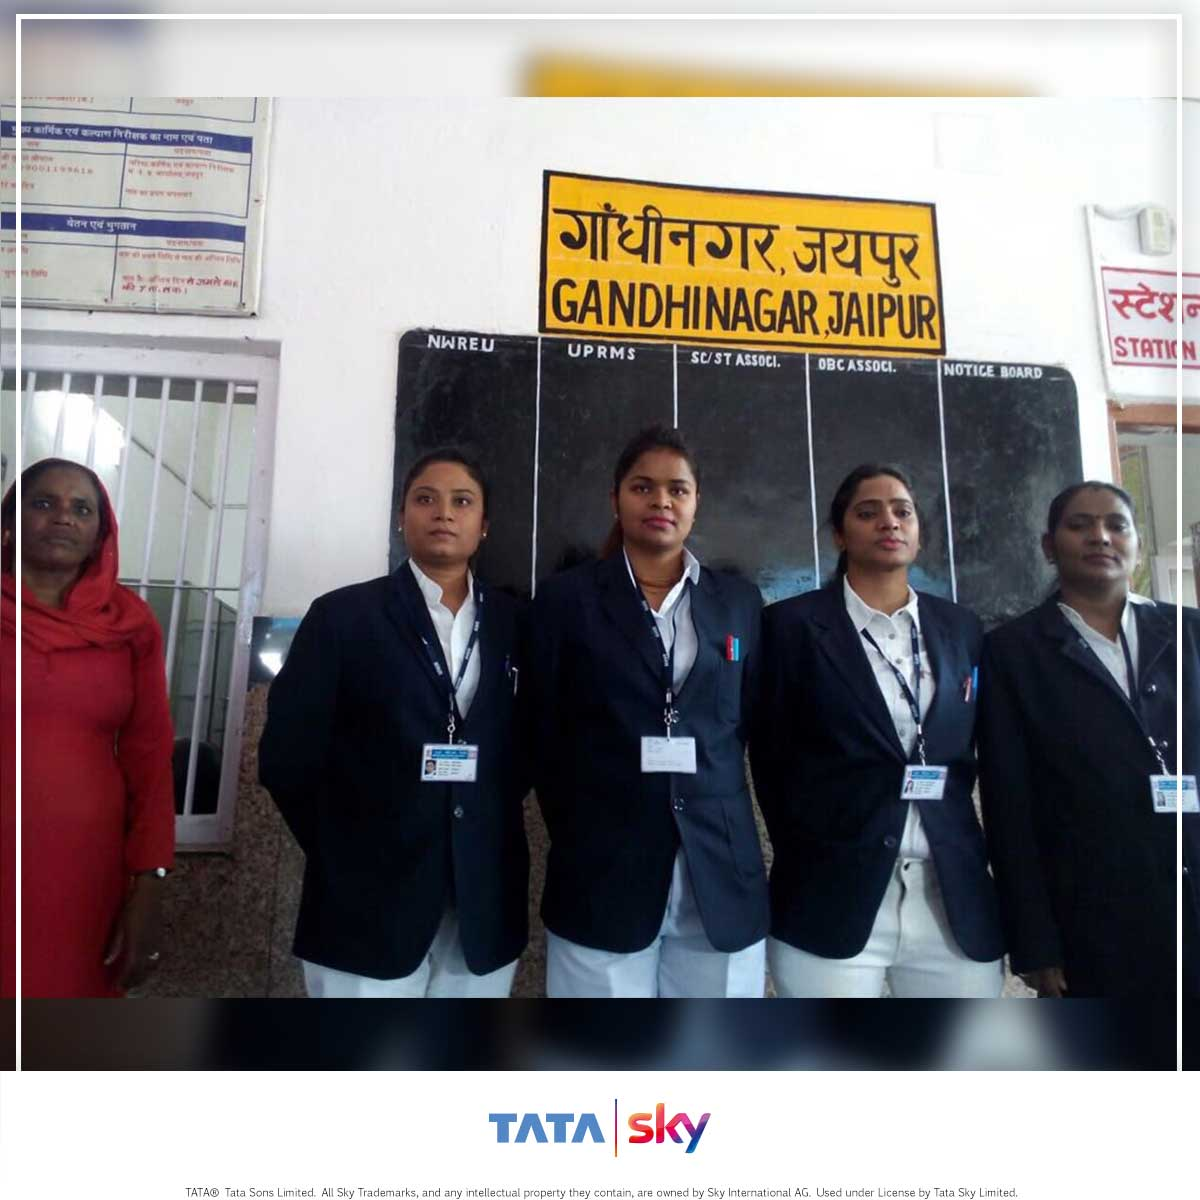 Tata Sky Blogbuster - Indian Women Railway employees